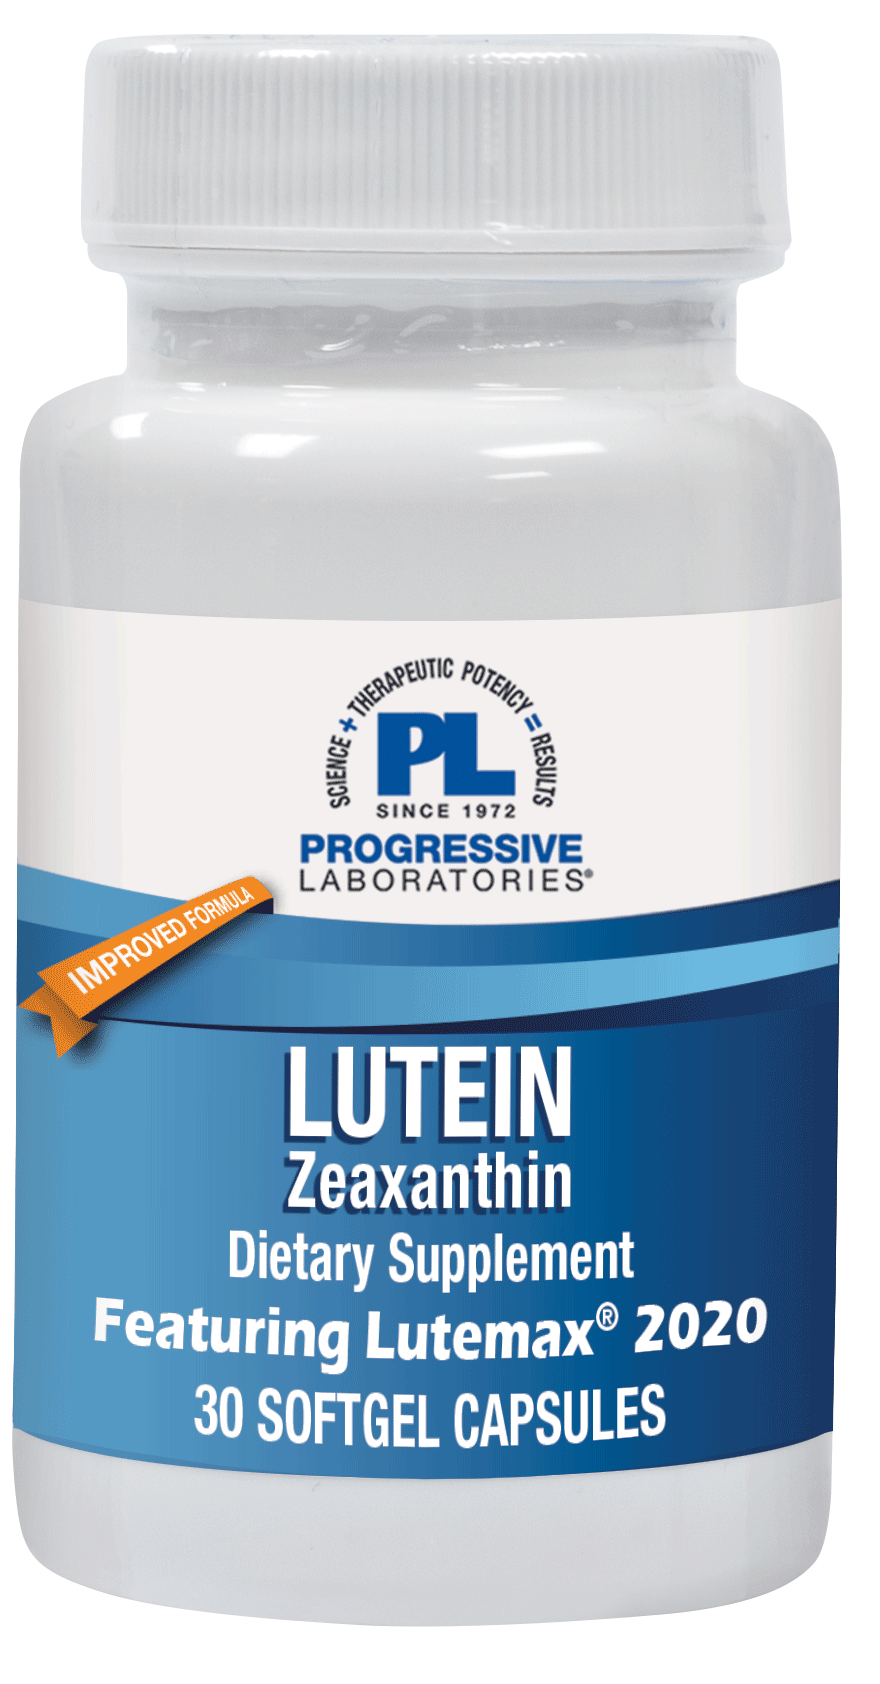 Lutein/Zeaxanthin Improved